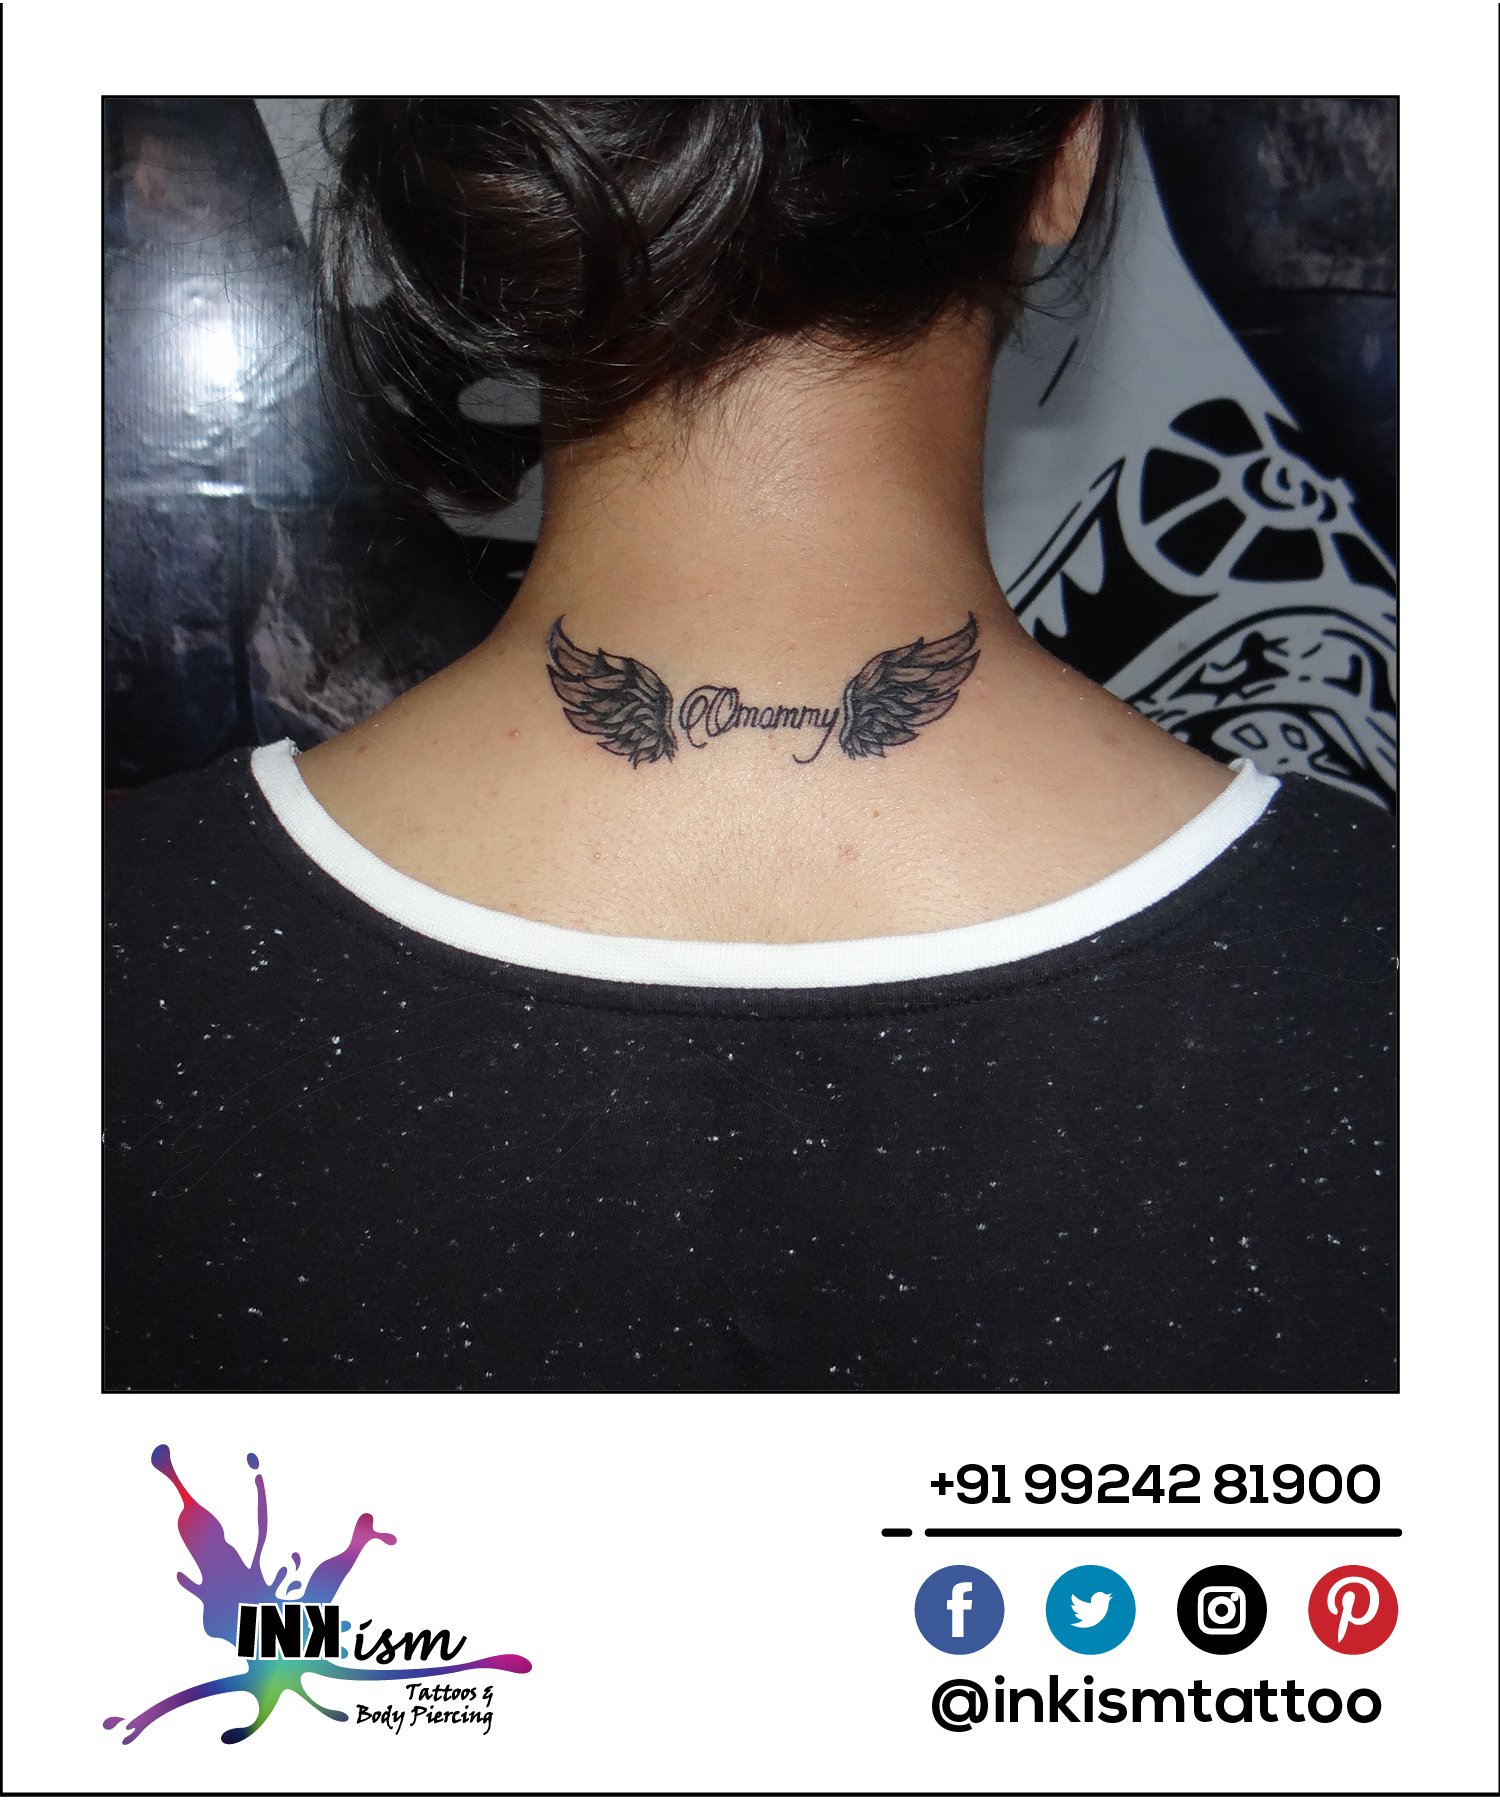 Wings with calligraphy name tattoo, Angle wings tattoo, Calligraphy tattoo, Inkism tattoo and body piercing rajkot gujarat